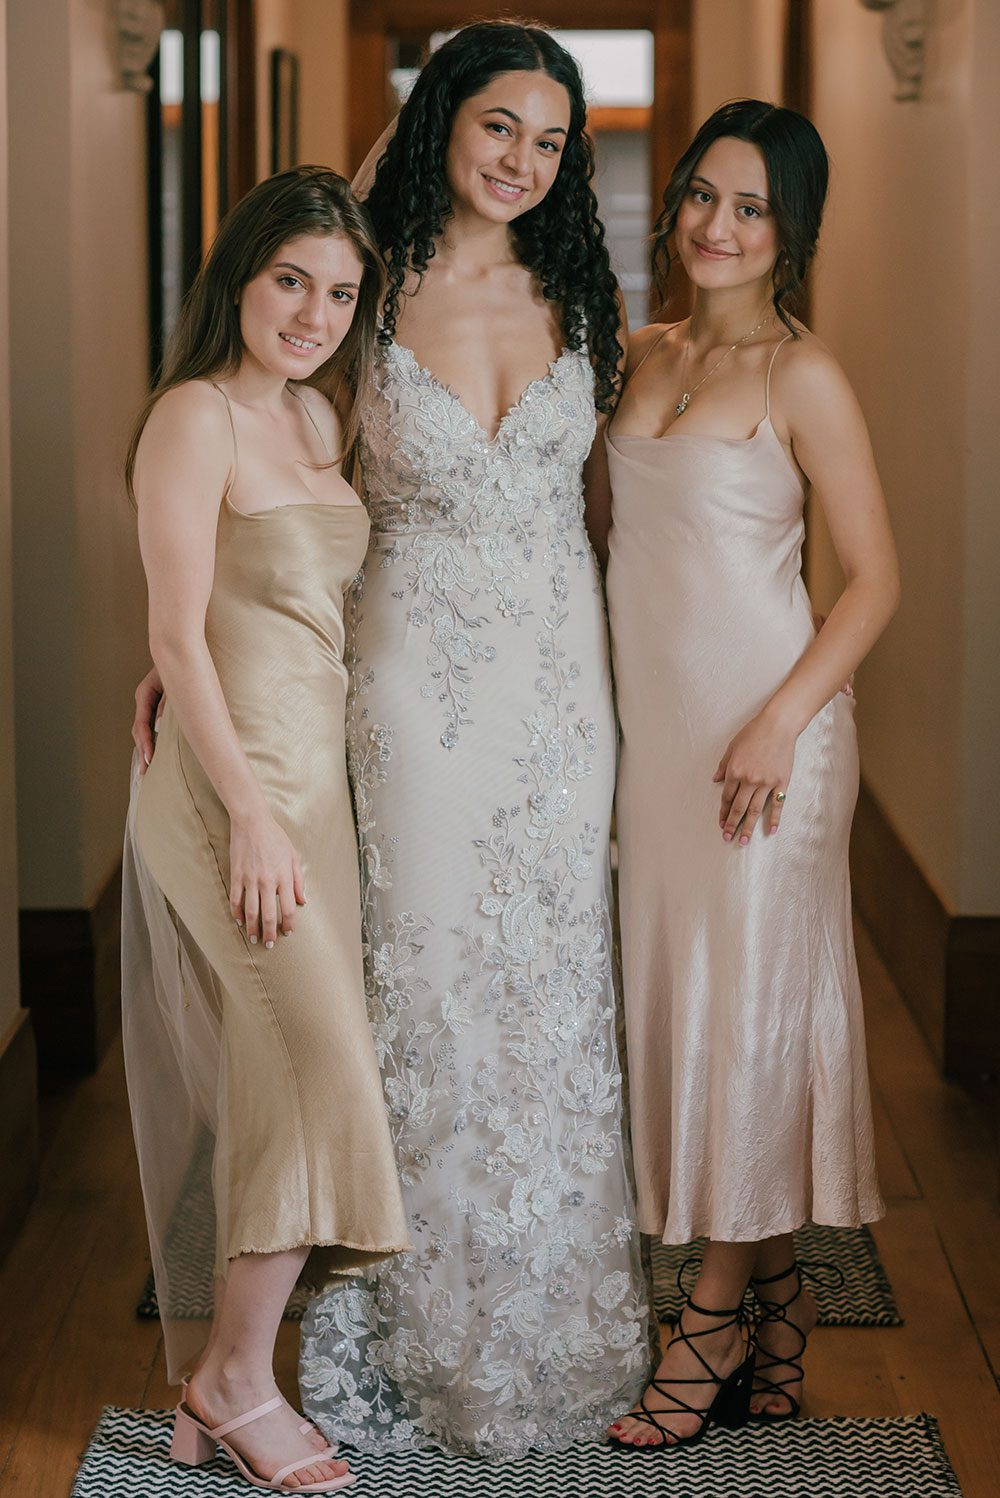 Bride wearing Kazumi Gown in soft grey with hand embellished lace and a low back - with bridesmaids in hall